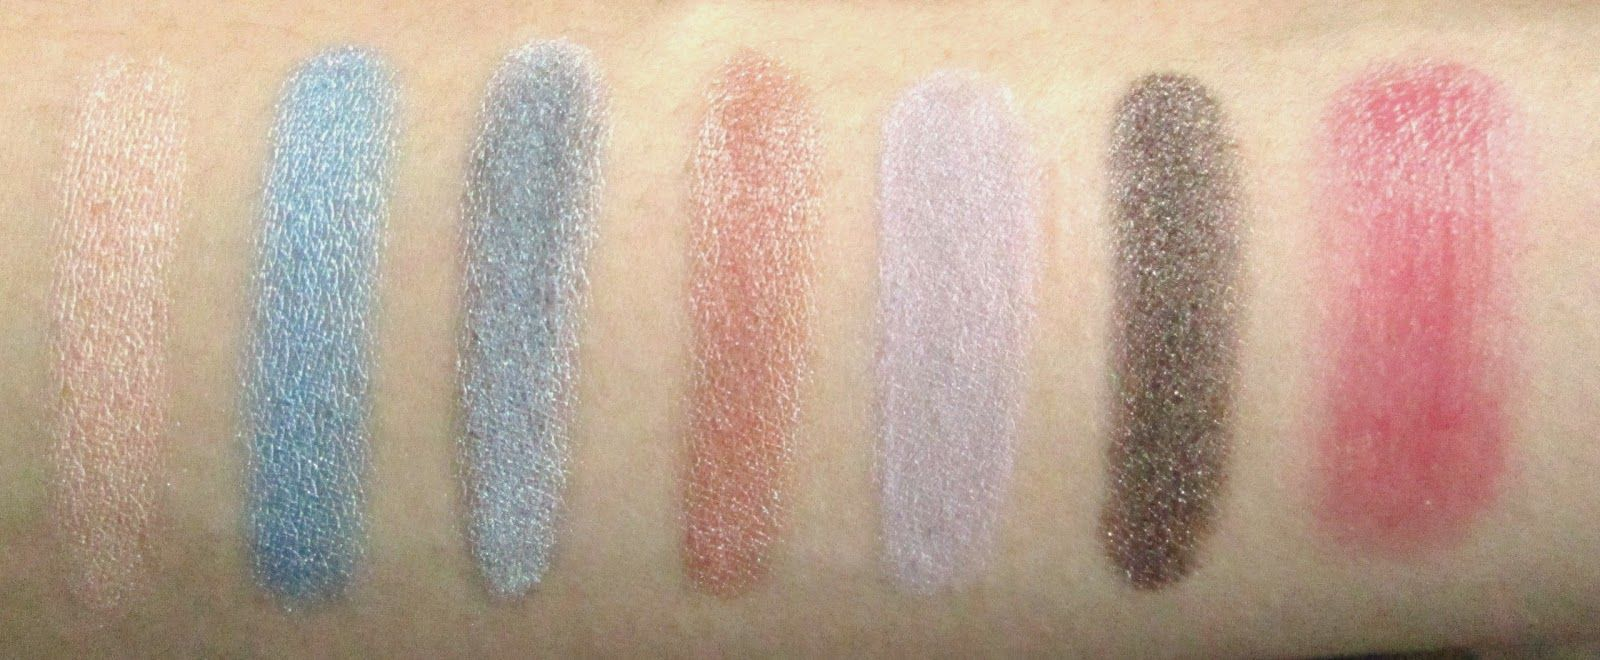 Innocent + Twisted Alchemy April 2014 Subscription - Review and Swatches